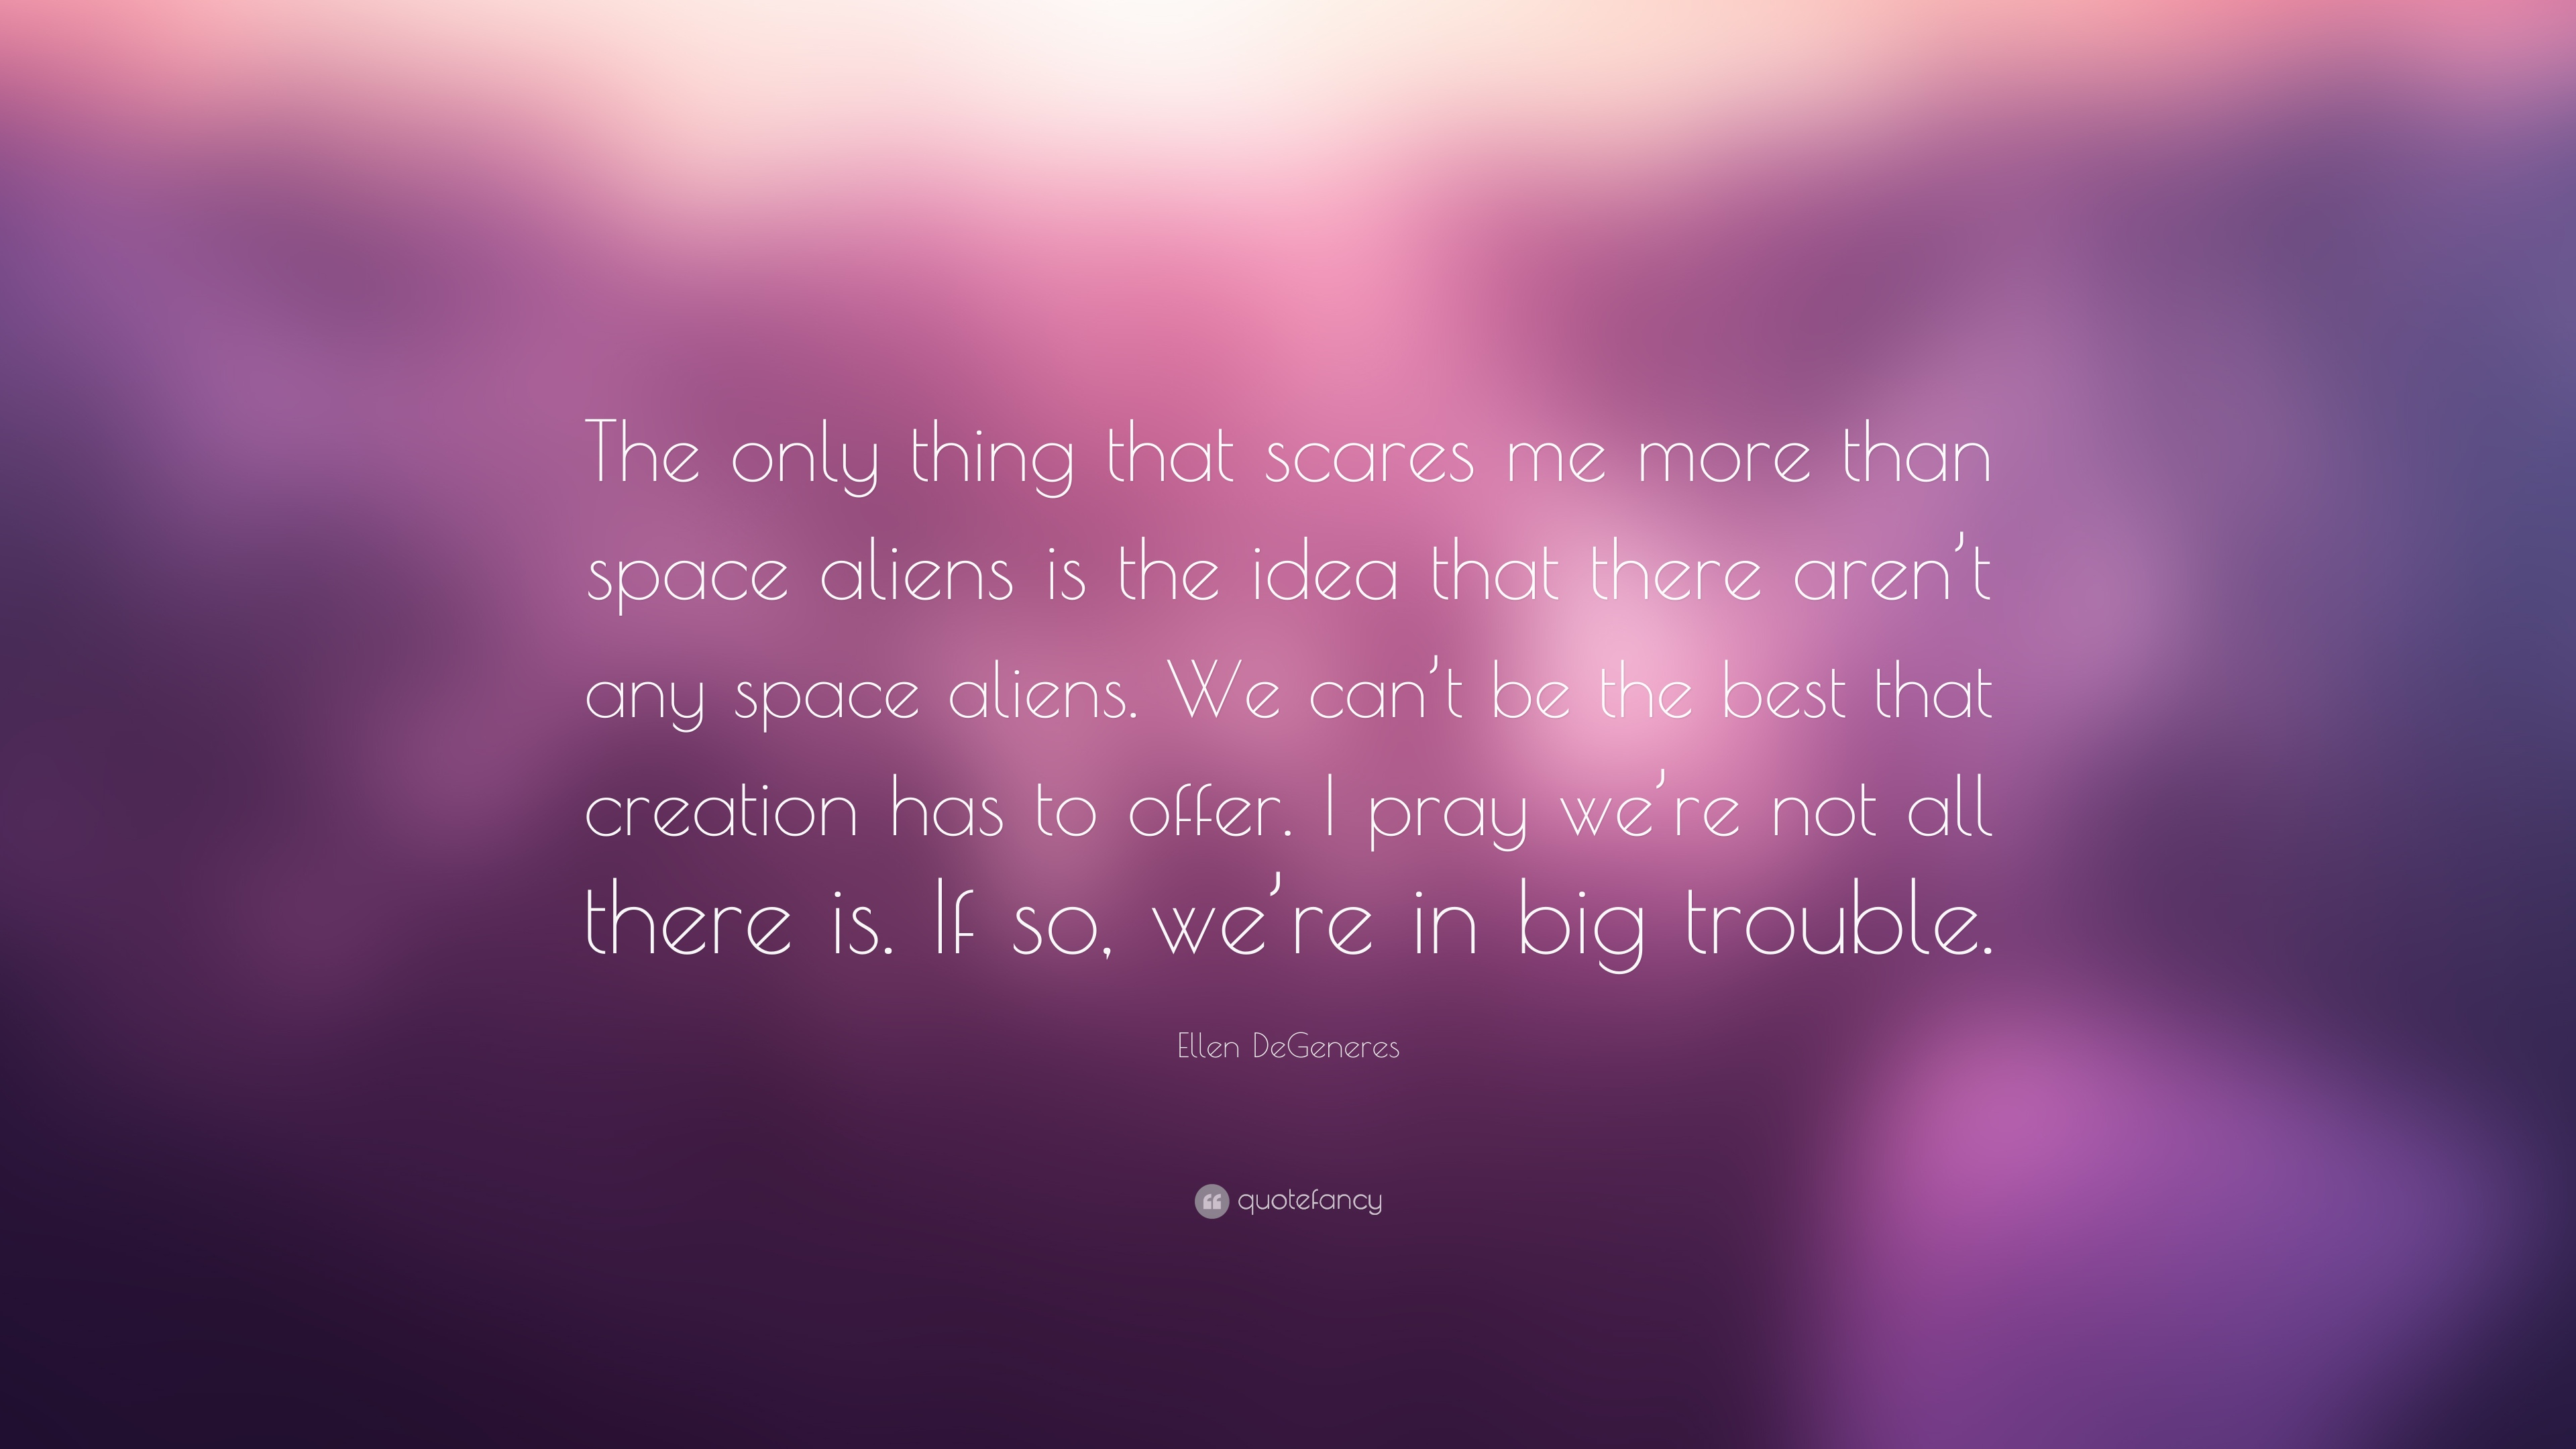 ellen degeneres quote u201cthe only thing that scares me more than